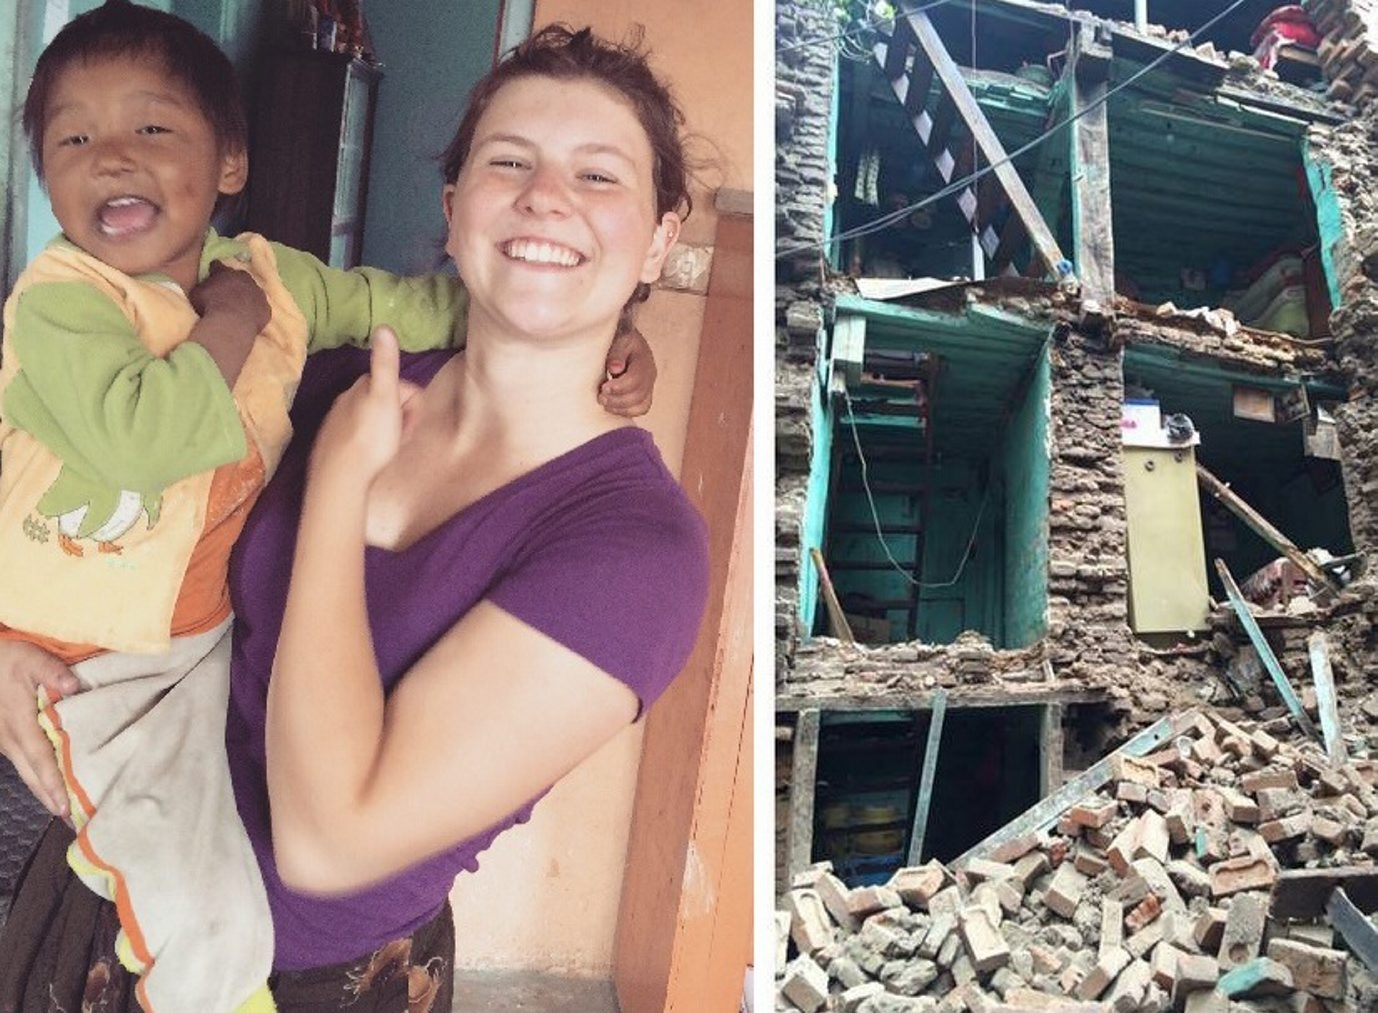 18-year-old Christina Morrow is shown with one of her charges at the Nepal orphanage where she volunteered. She and the 26 orphans in the home survived Saturday's earthquake. (Photos provided by Christina Morrow)